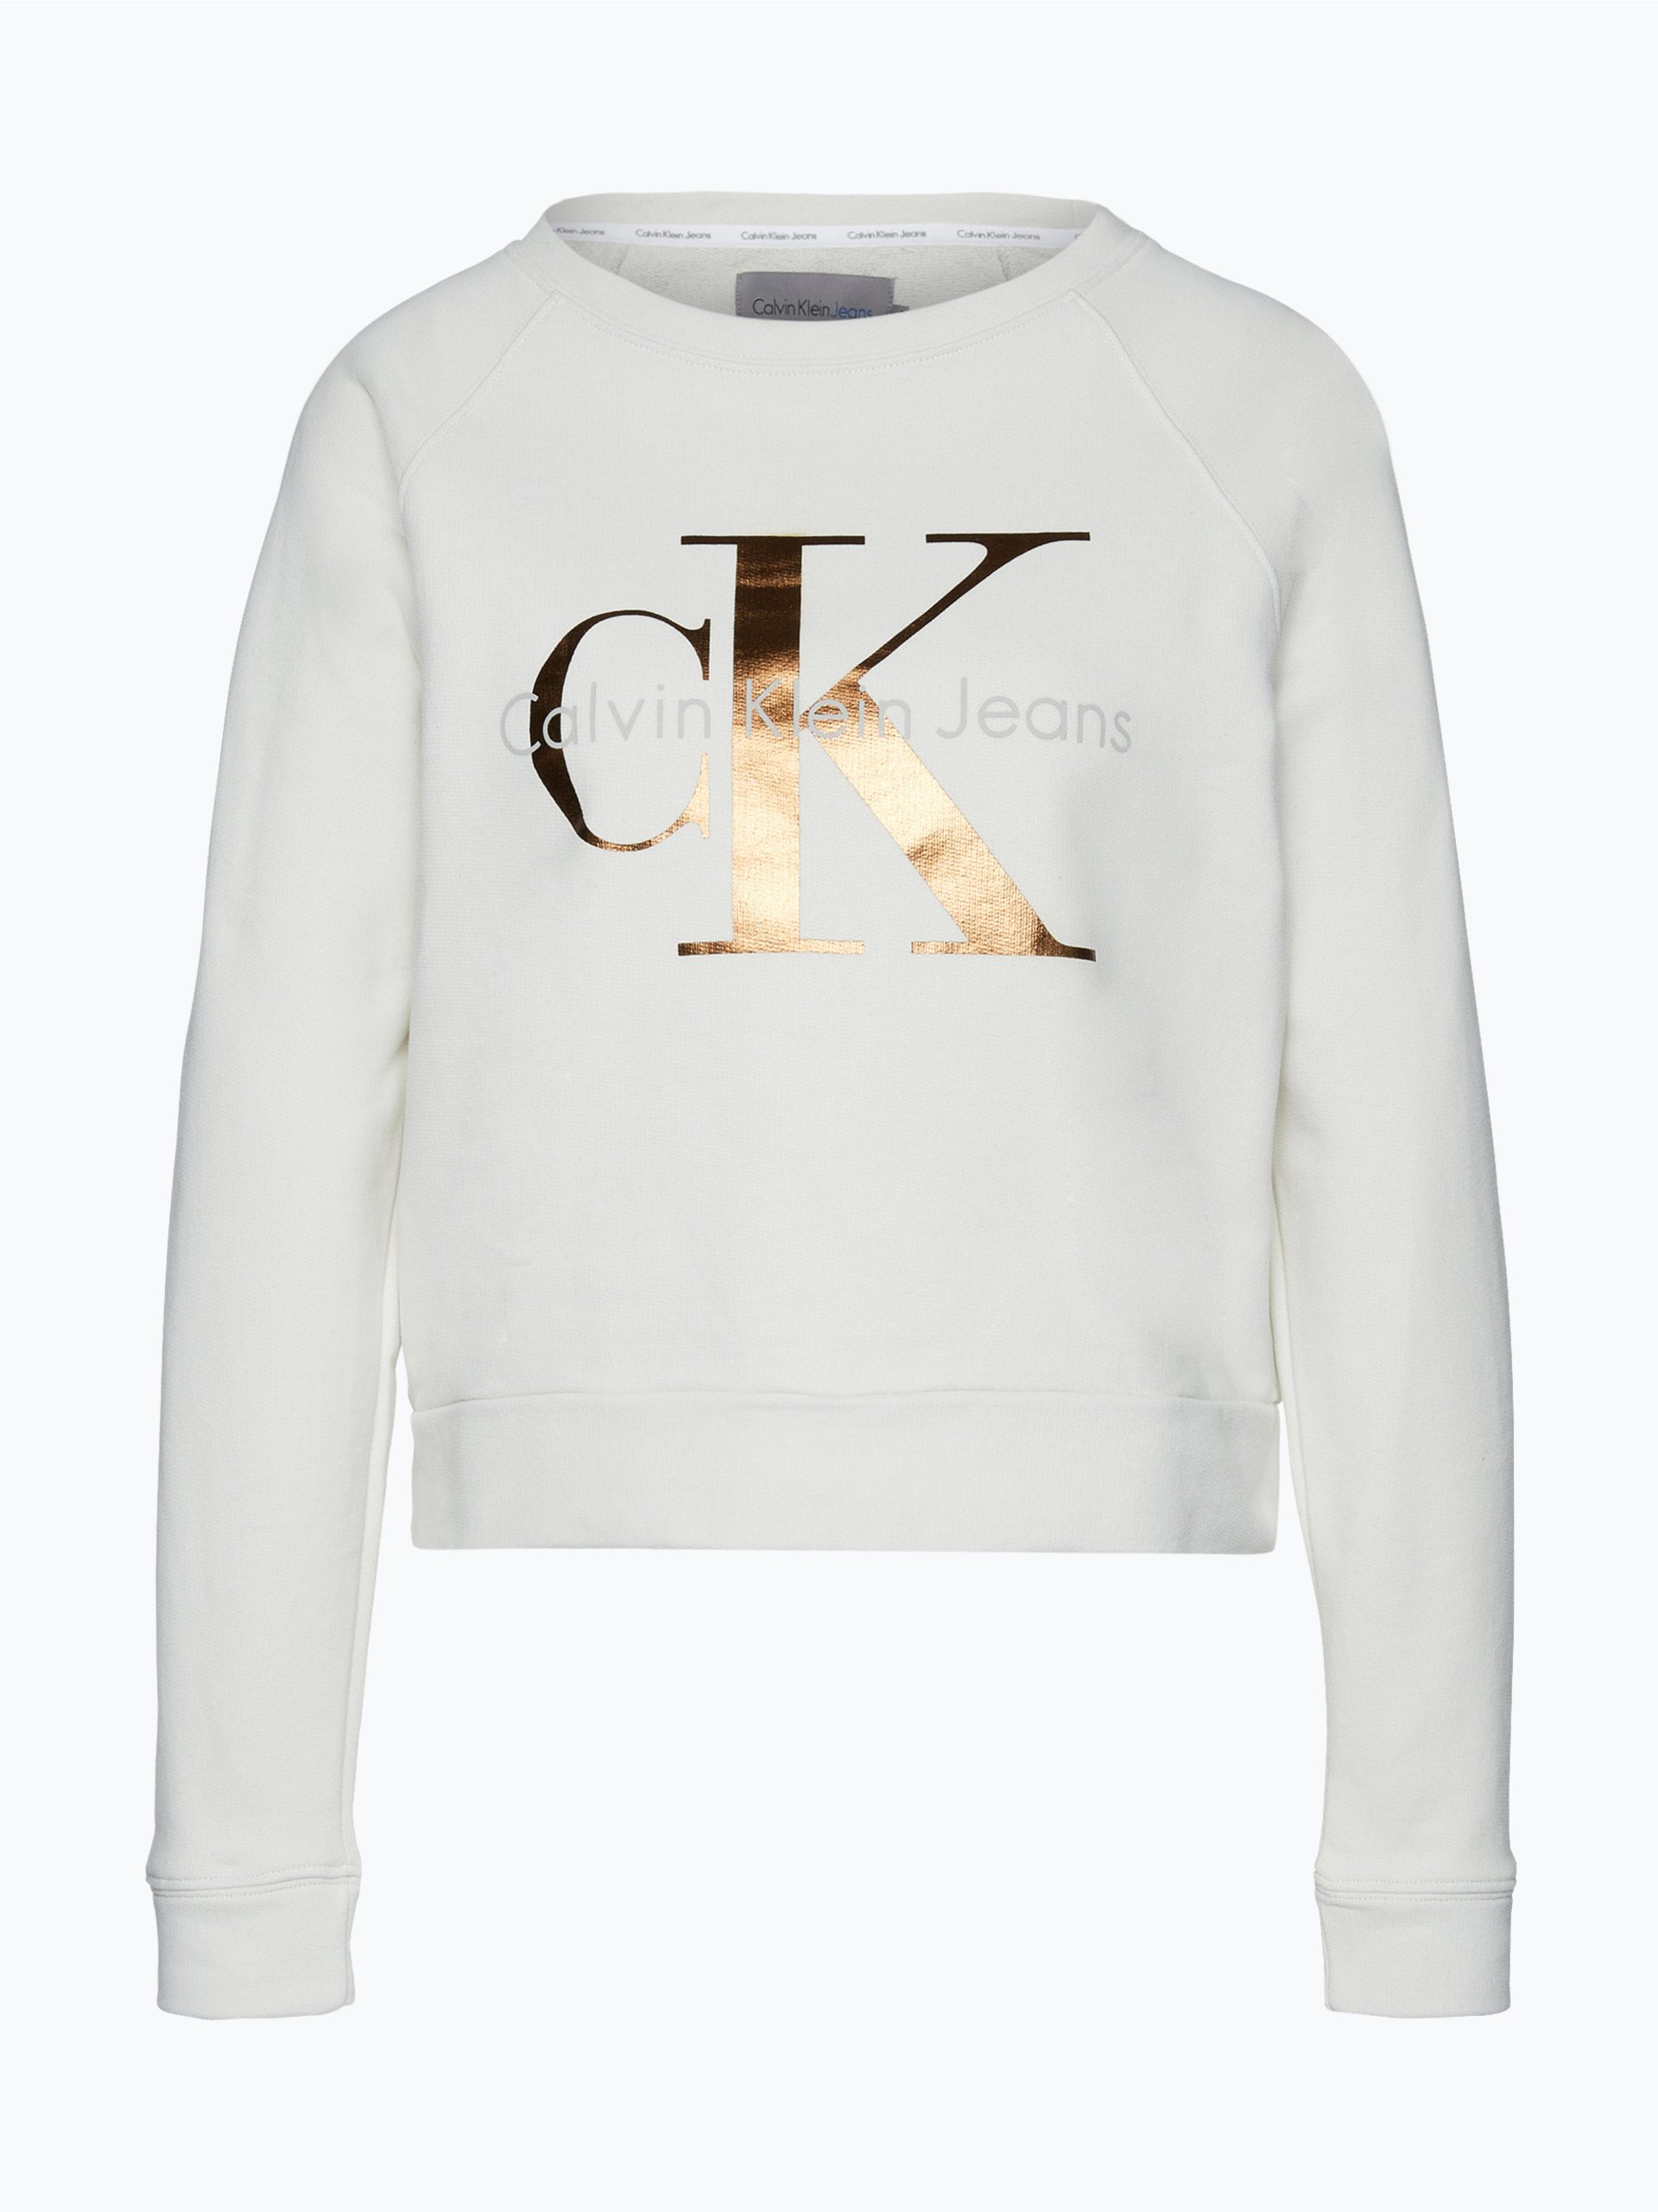 calvin klein jeans damen sweatshirt mehrfarbig uni online. Black Bedroom Furniture Sets. Home Design Ideas